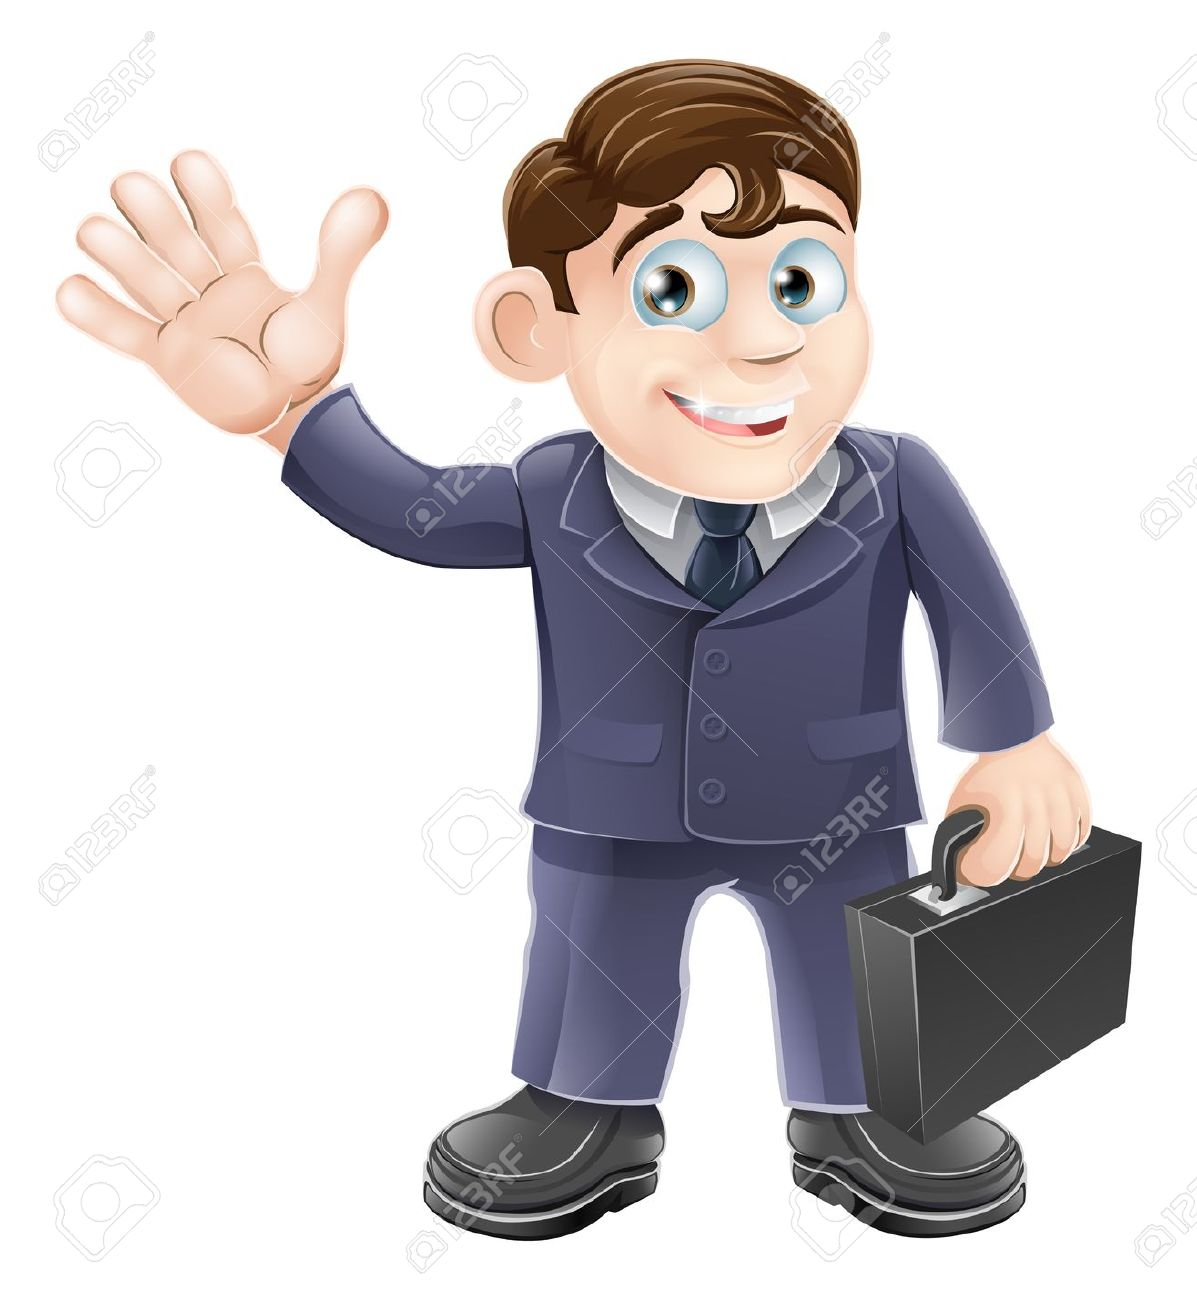 Illustration Of A Happy Smiling Cartoon Business Man Waving And.